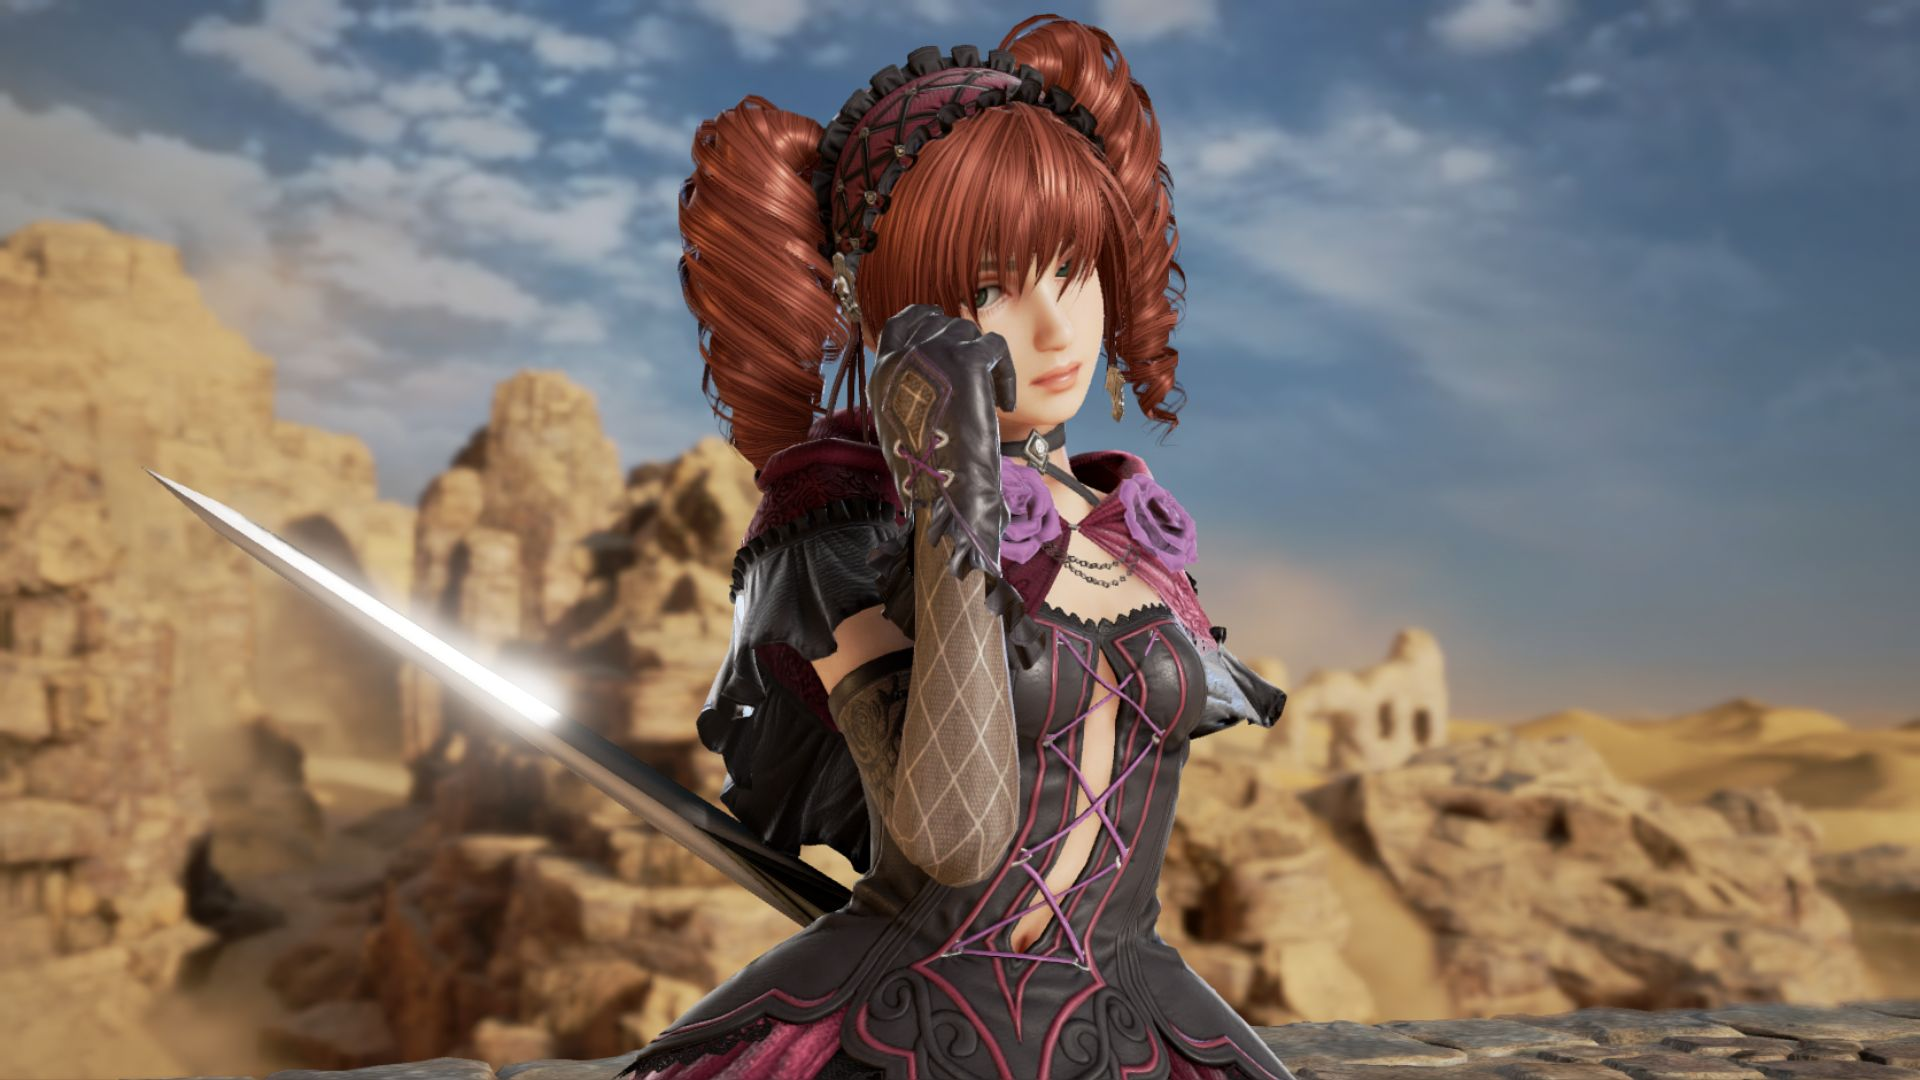 Soulcalibur Vi S Dlc Ami Shines In Tons Of Screenshots New